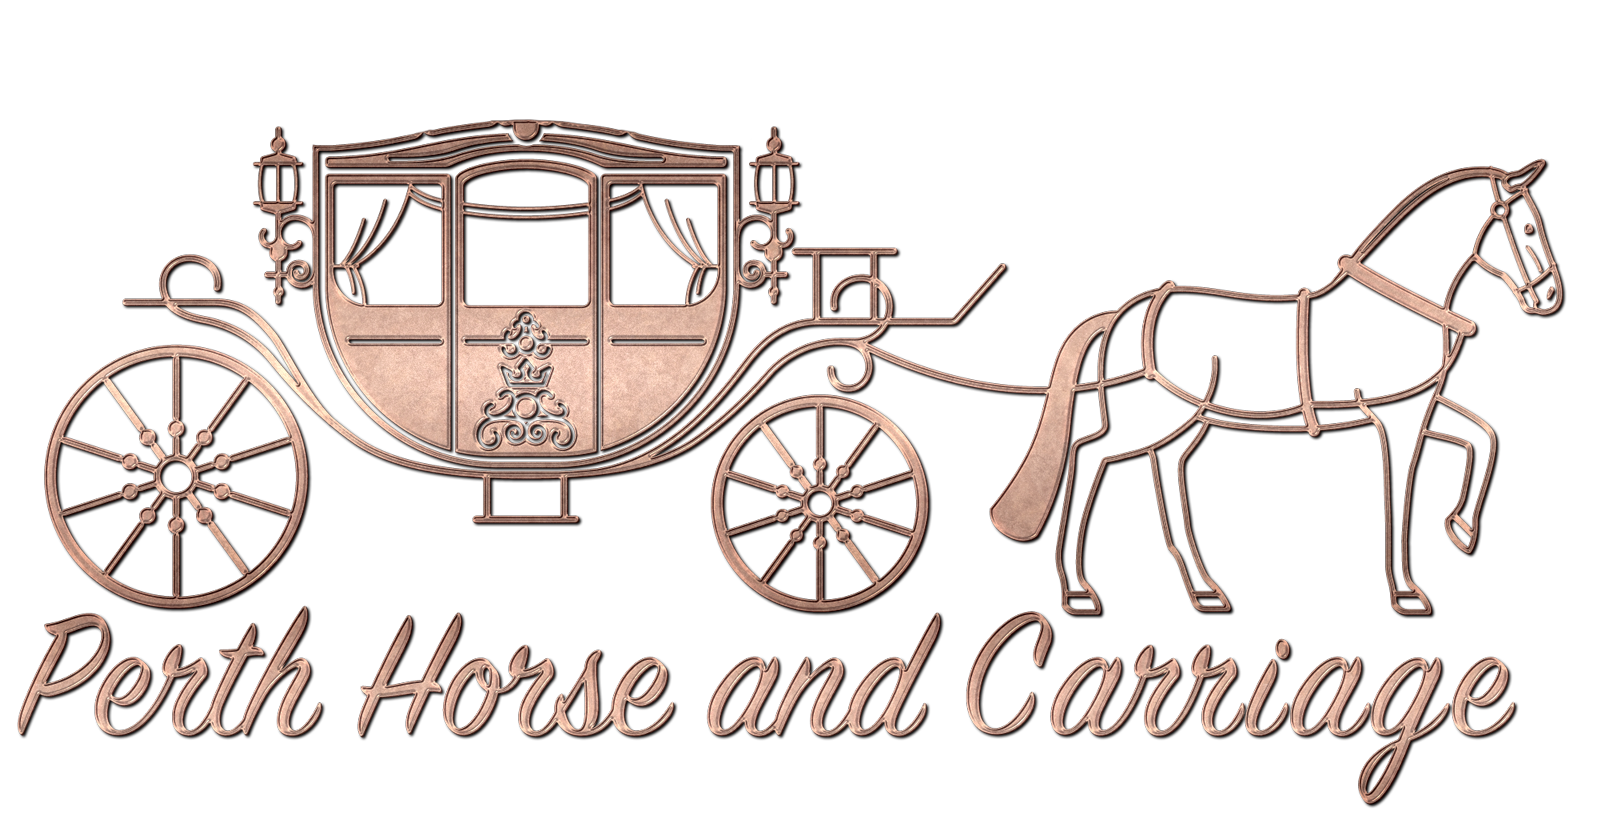 Perth horse and carriage. Wagon clipart coverd